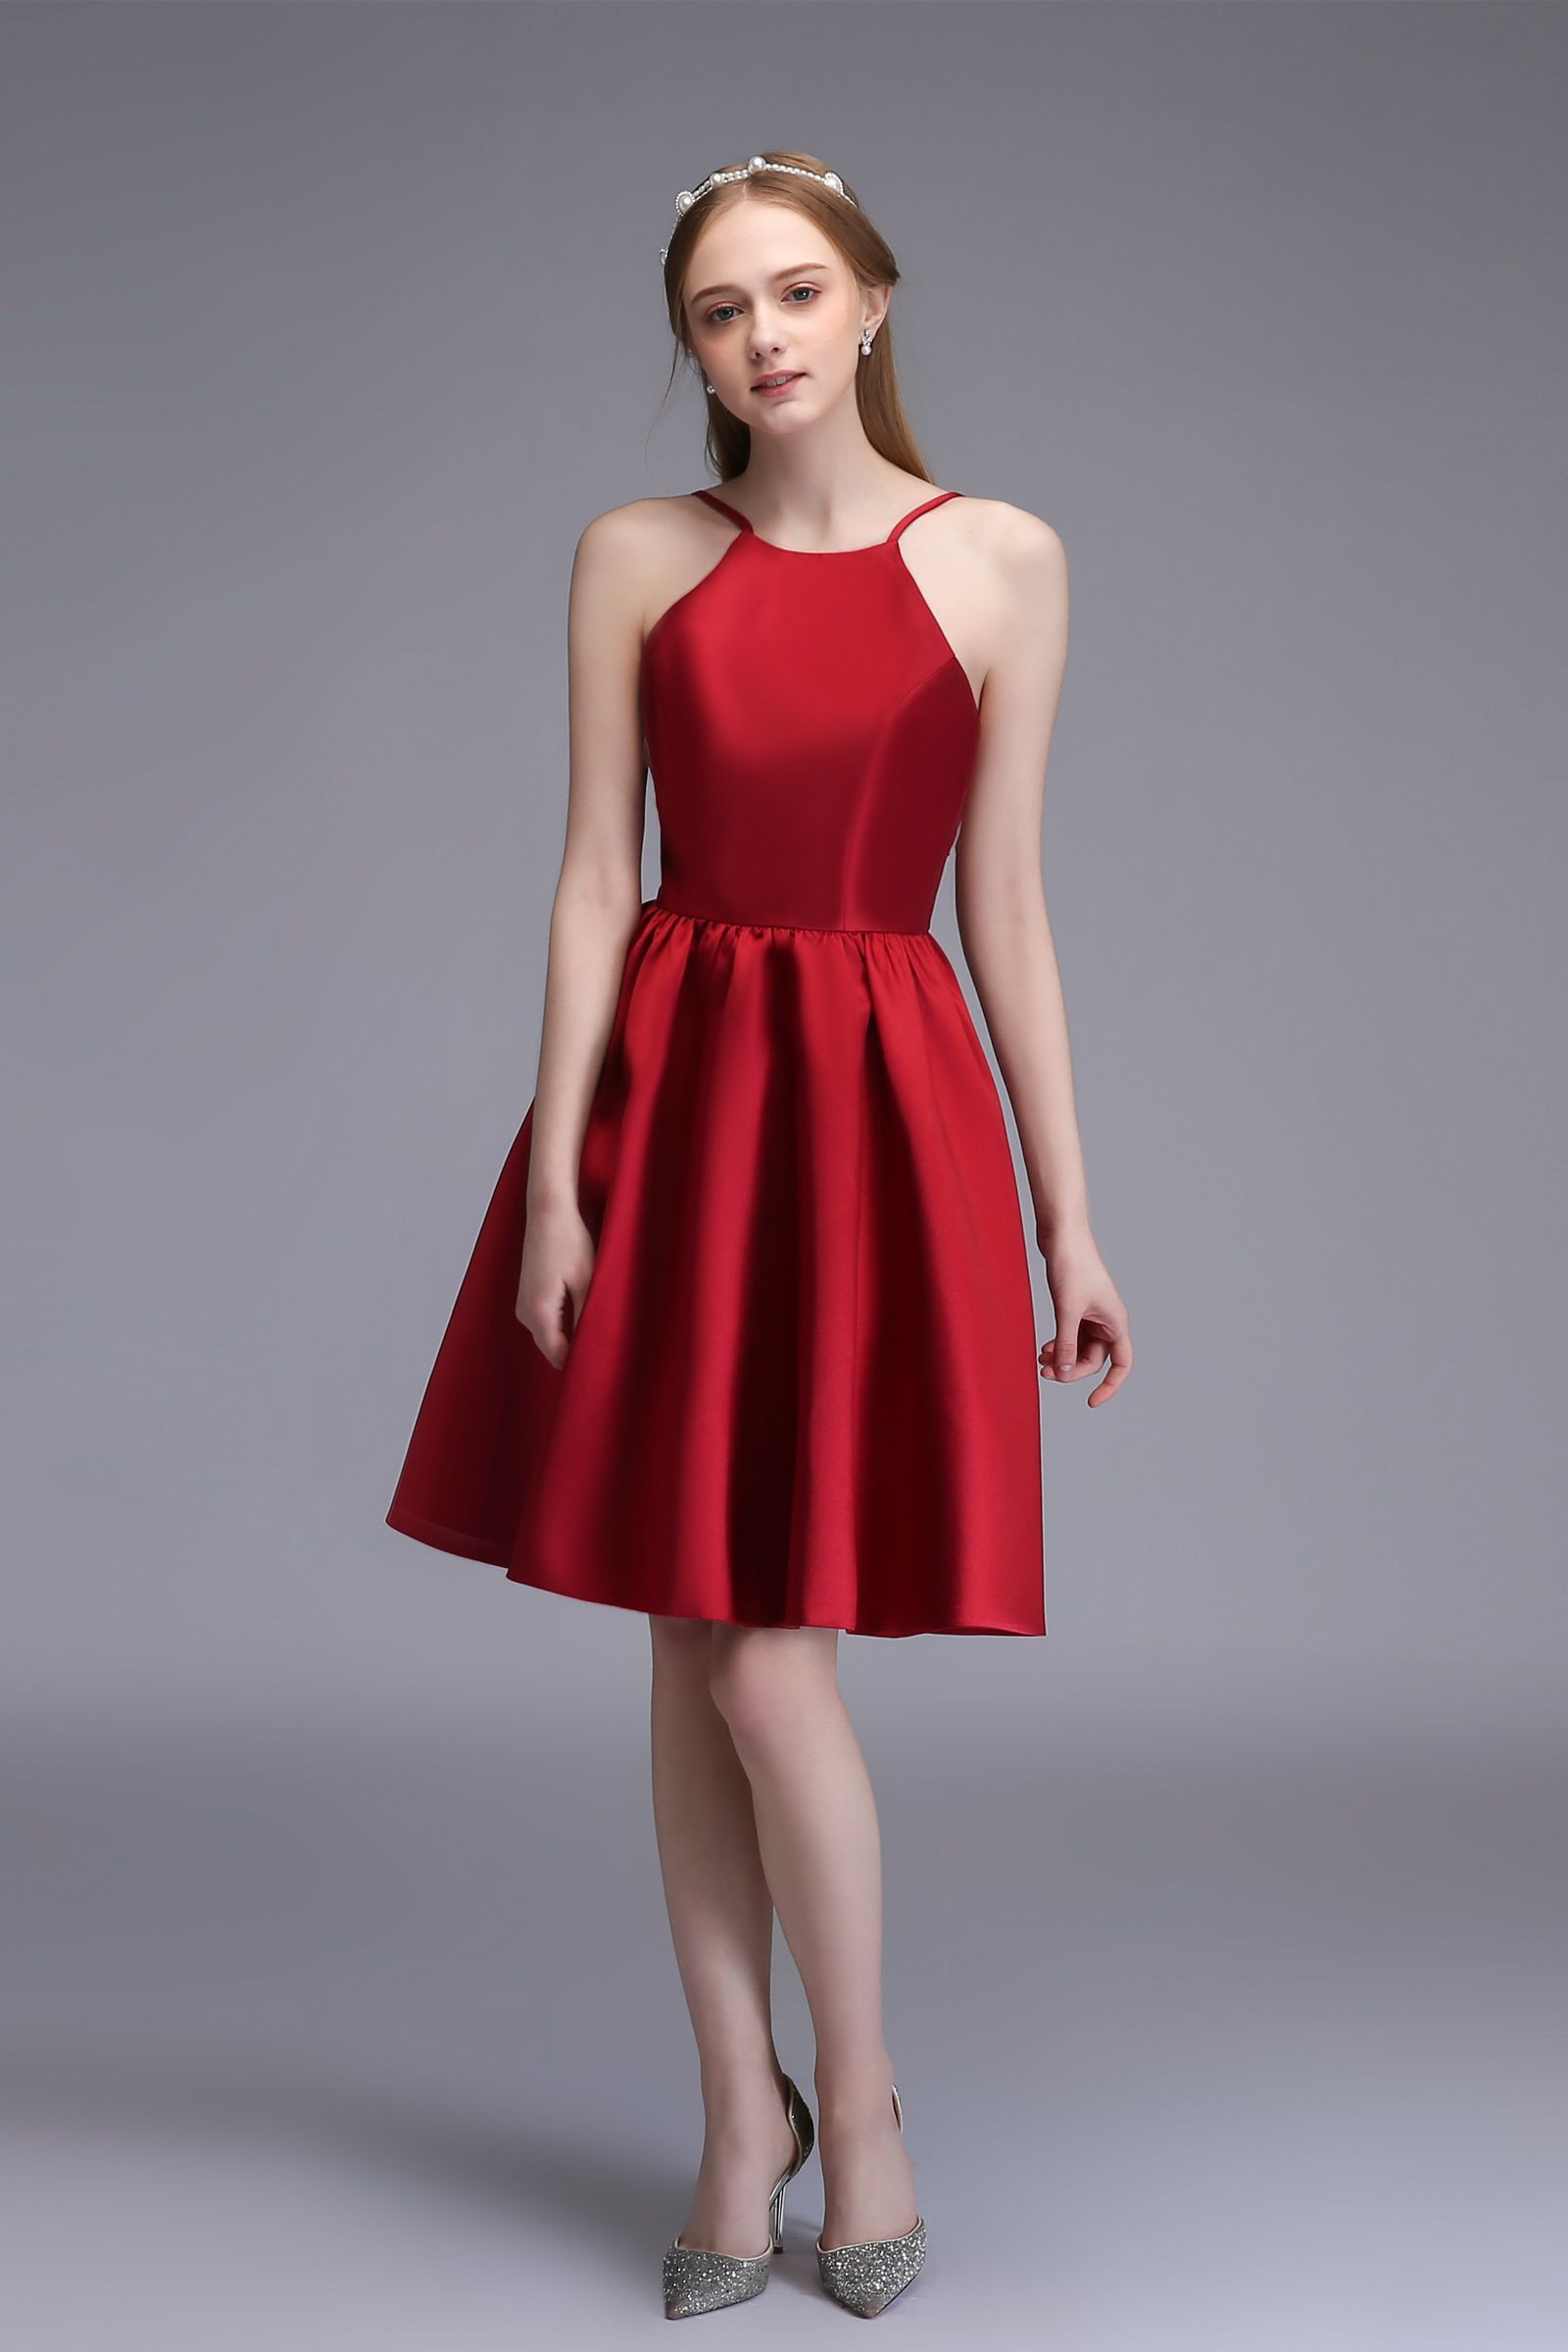 REd Short Party Dress